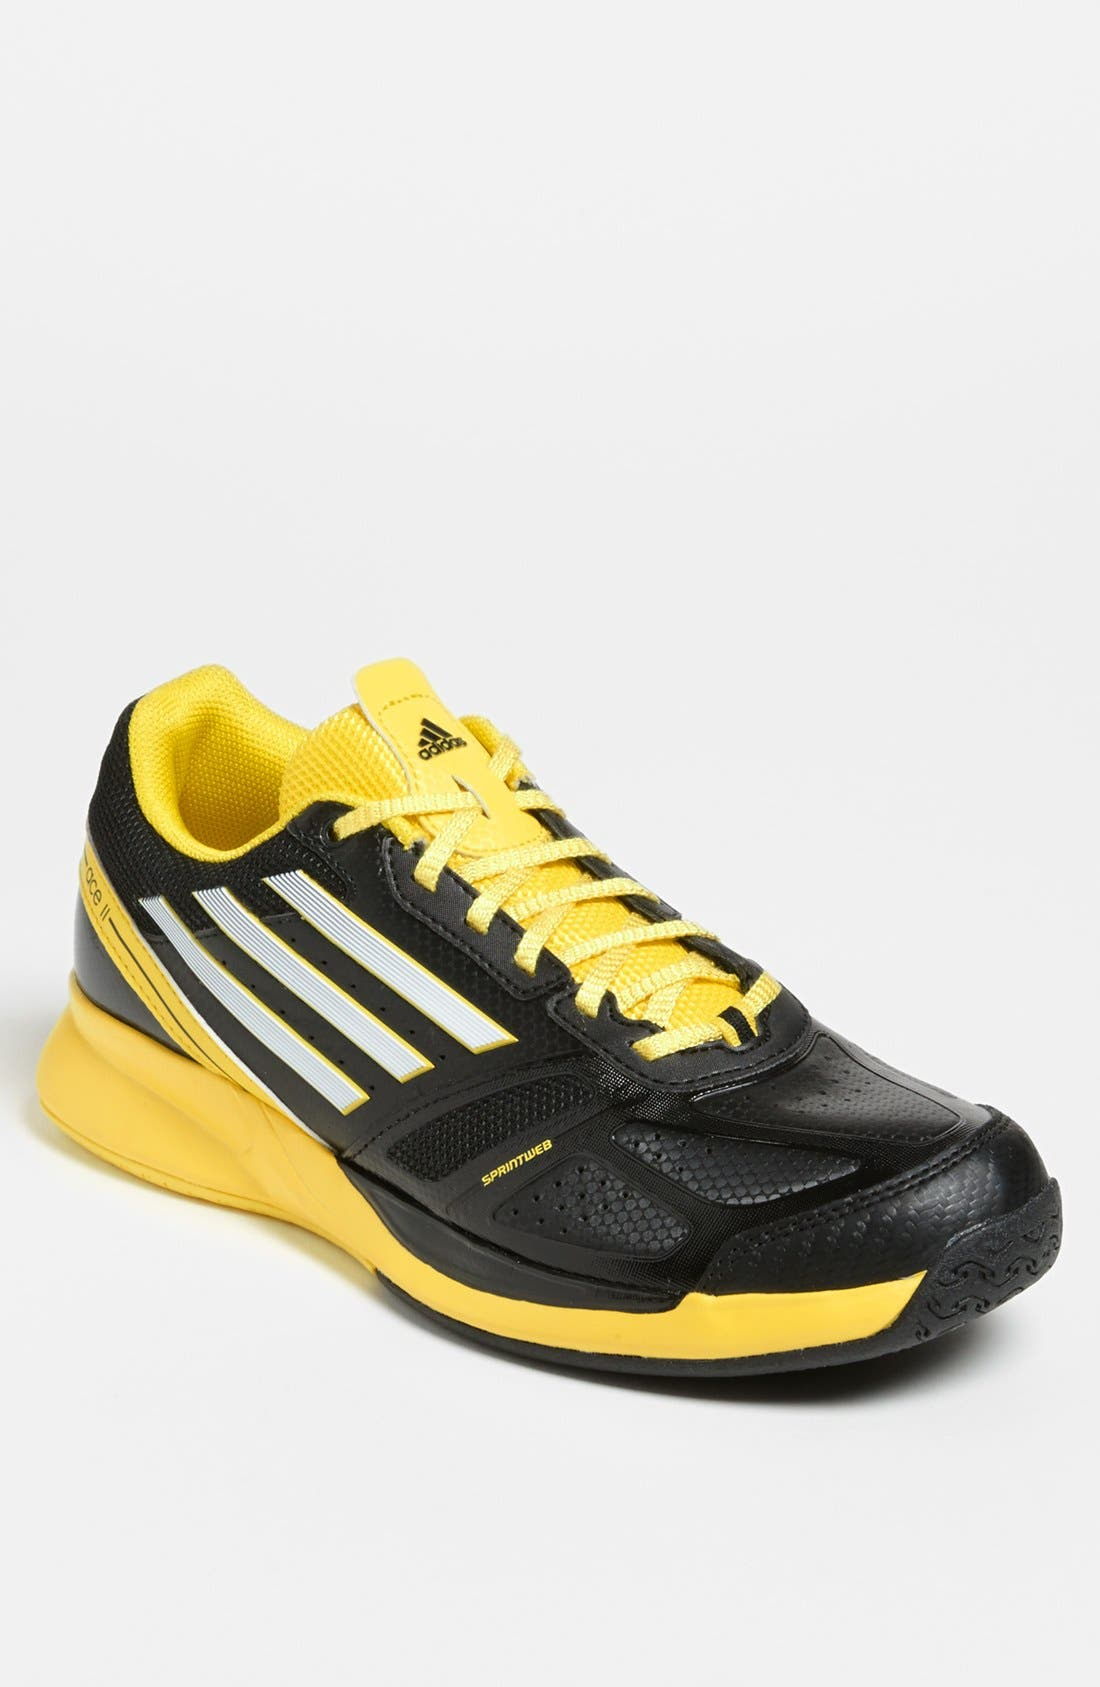 Main Image - adidas 'adiZero Ace II' Tennis Shoe (Men)